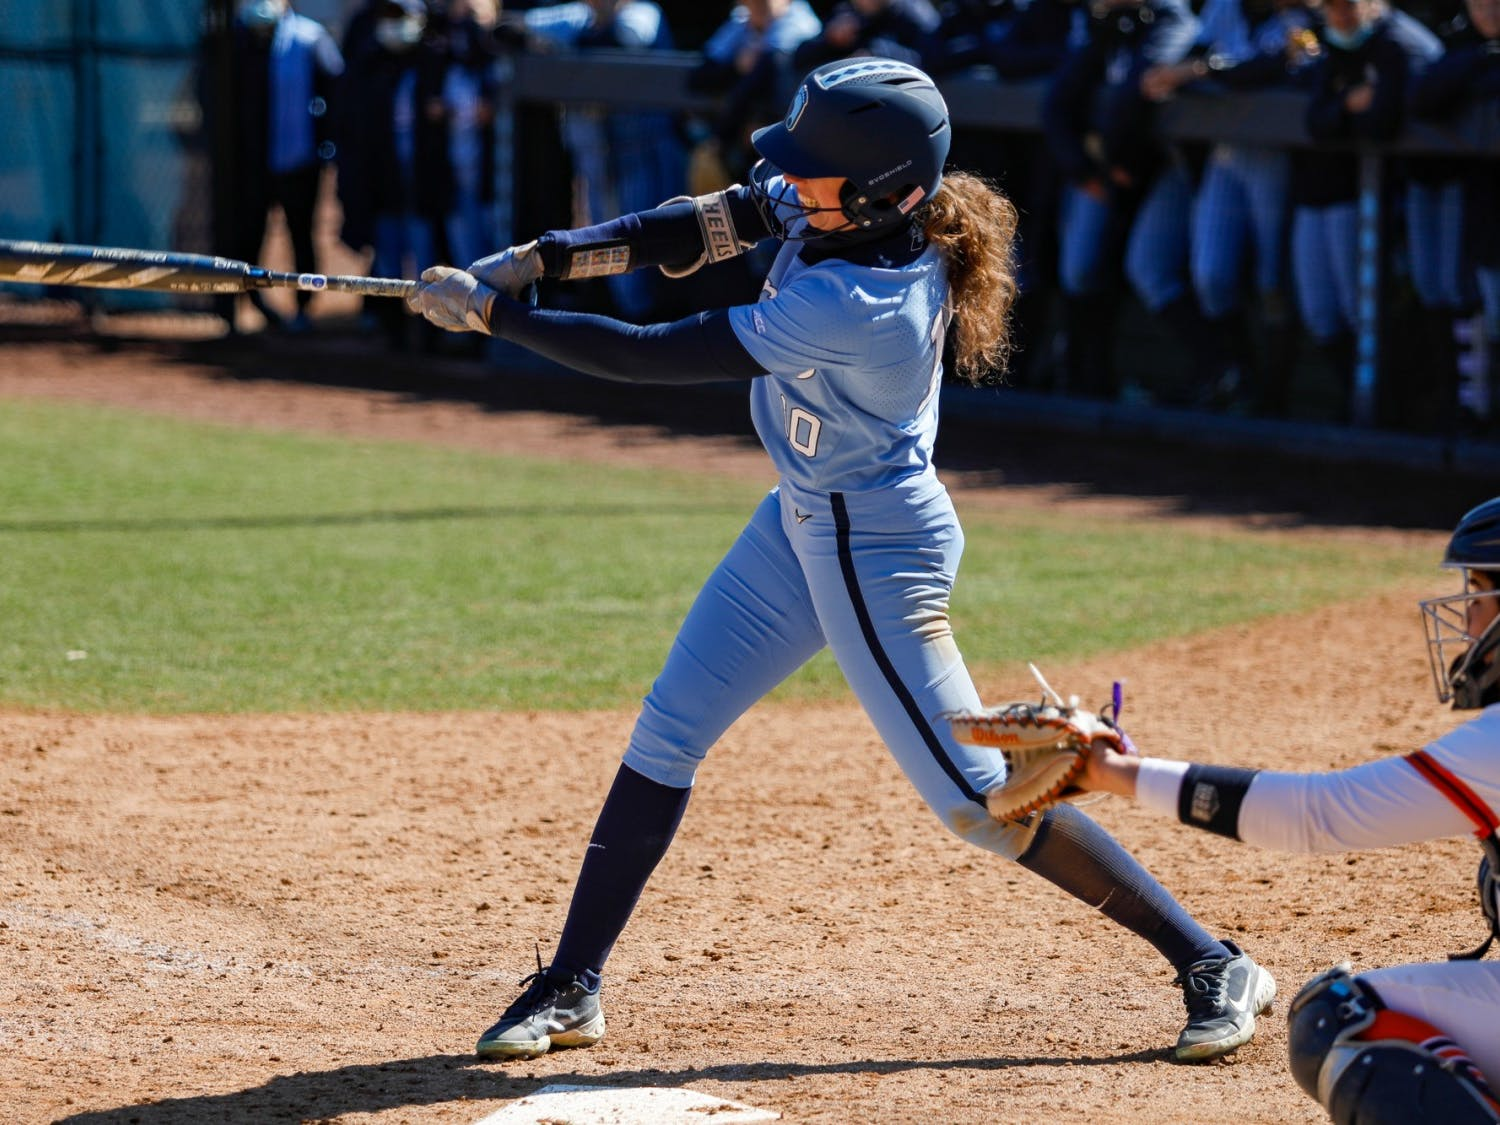 UNC redshirt senior Kristina Burkhardt (10) takes a swing in Anderson Softball Stadium in Chapel Hill, NC on Feb. 20, 2021. The Syracuse Orange beat the Tar Heels 3-2.